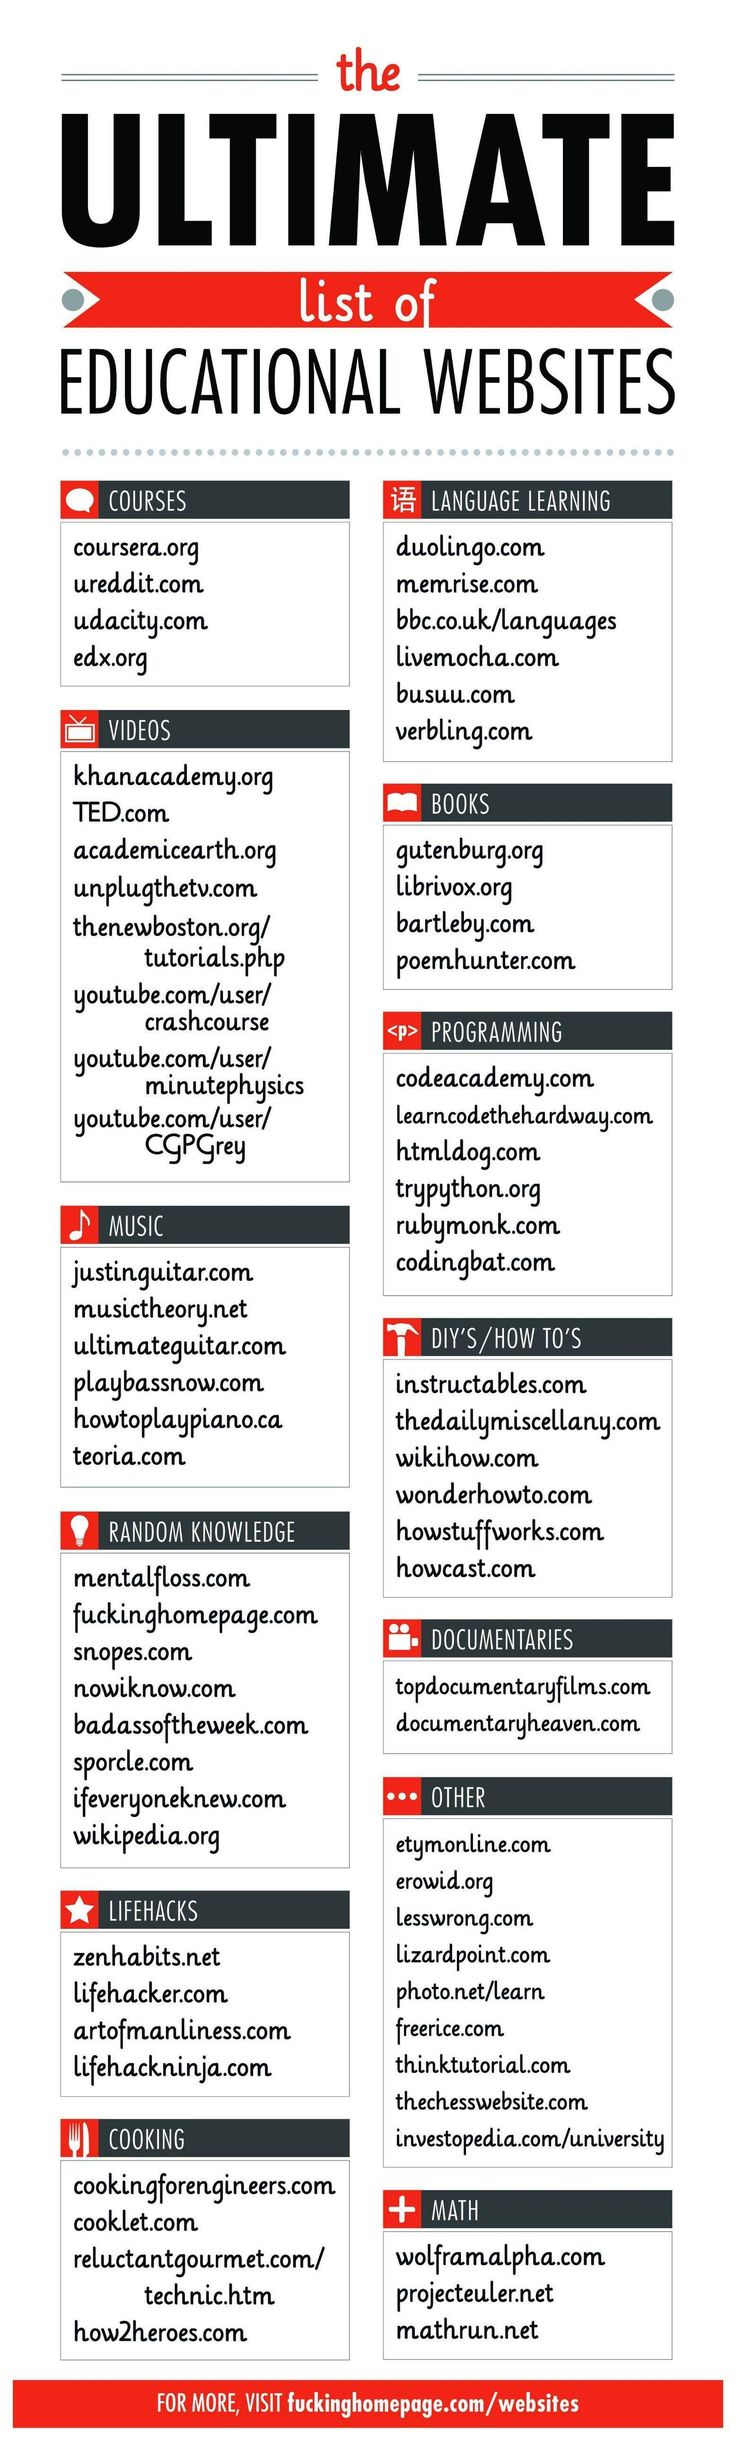 The ultimate list of educational websites #infographic #class #teacher #student #learn #school #college #ideas #tips